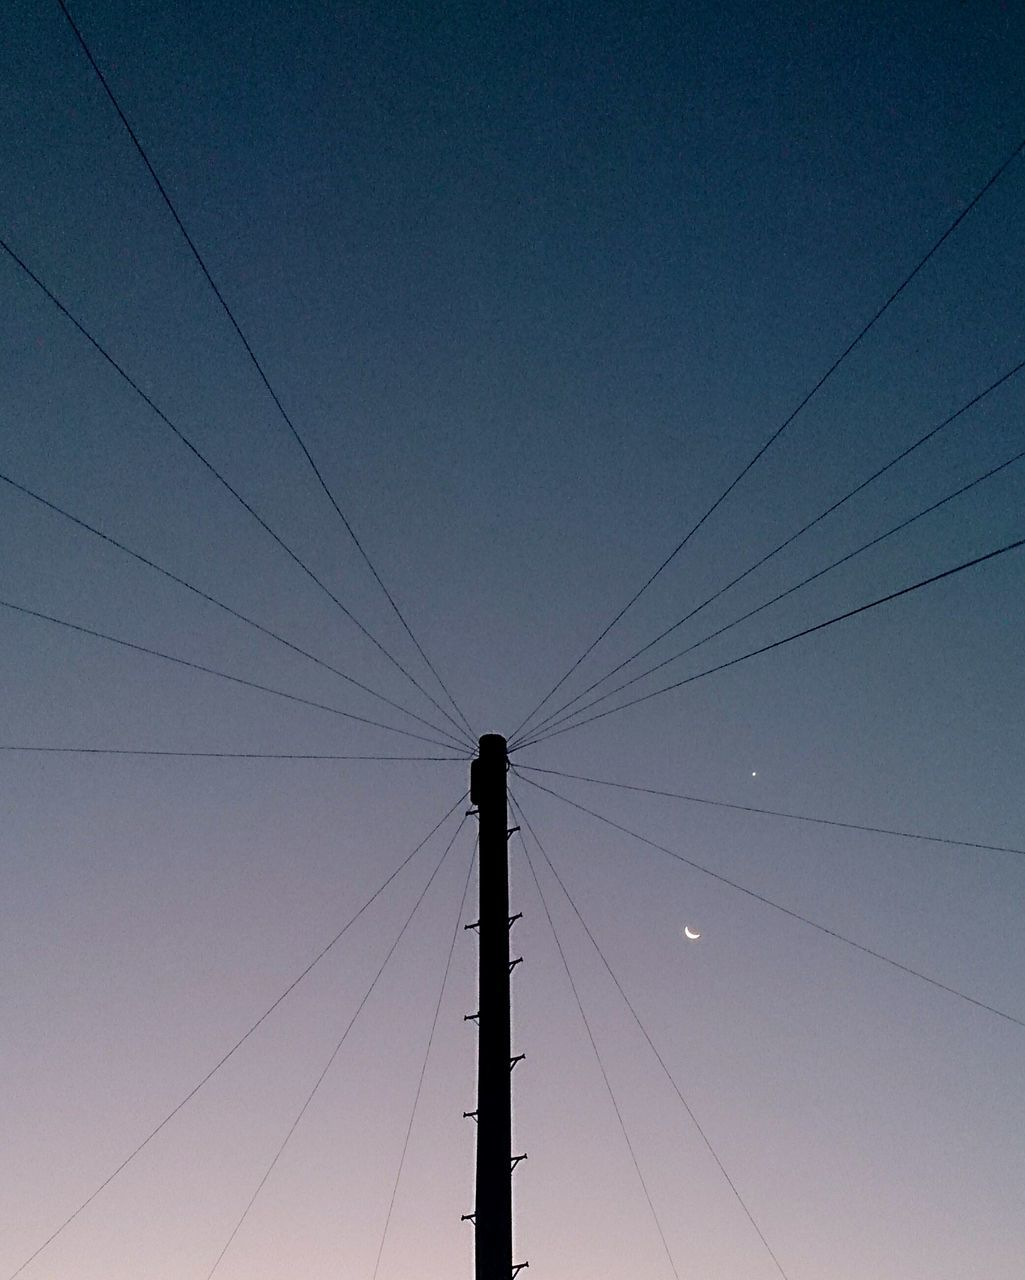 Low Angle View Of Silhouette Telephone Pole Against Sky At Dusk